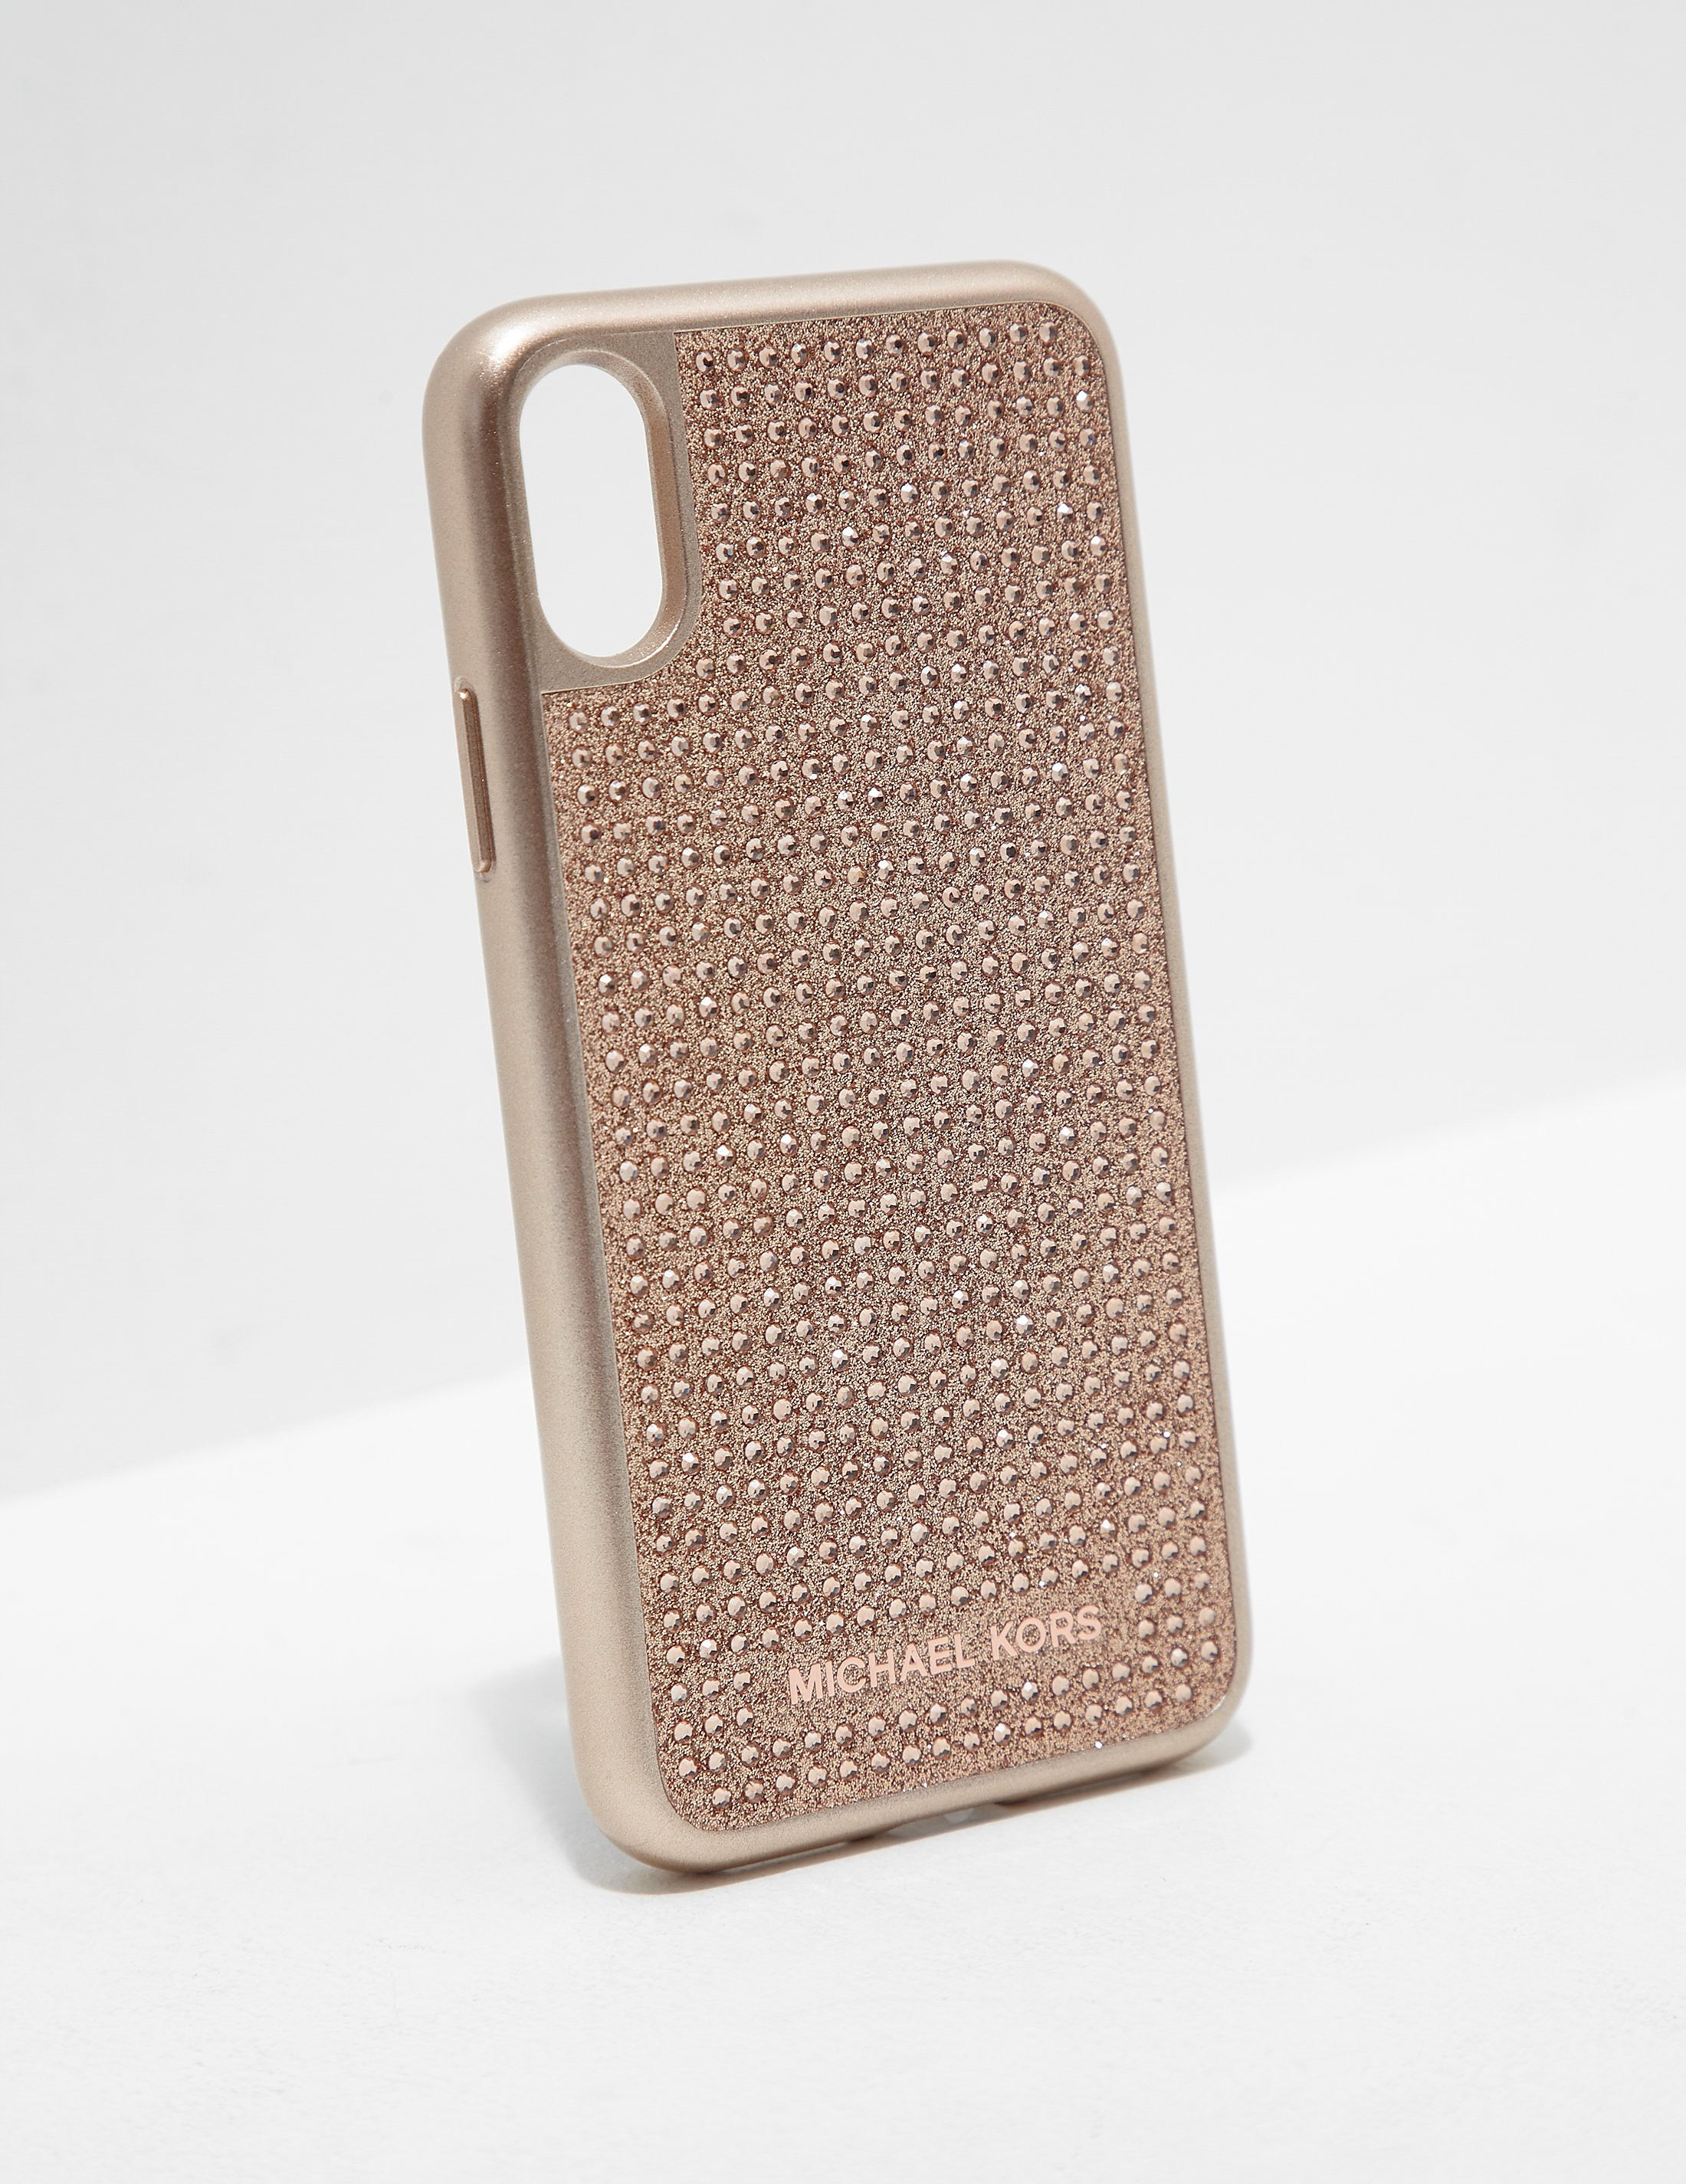 Michael Kors iPhone 8 Phone Cover - Online Exclusive